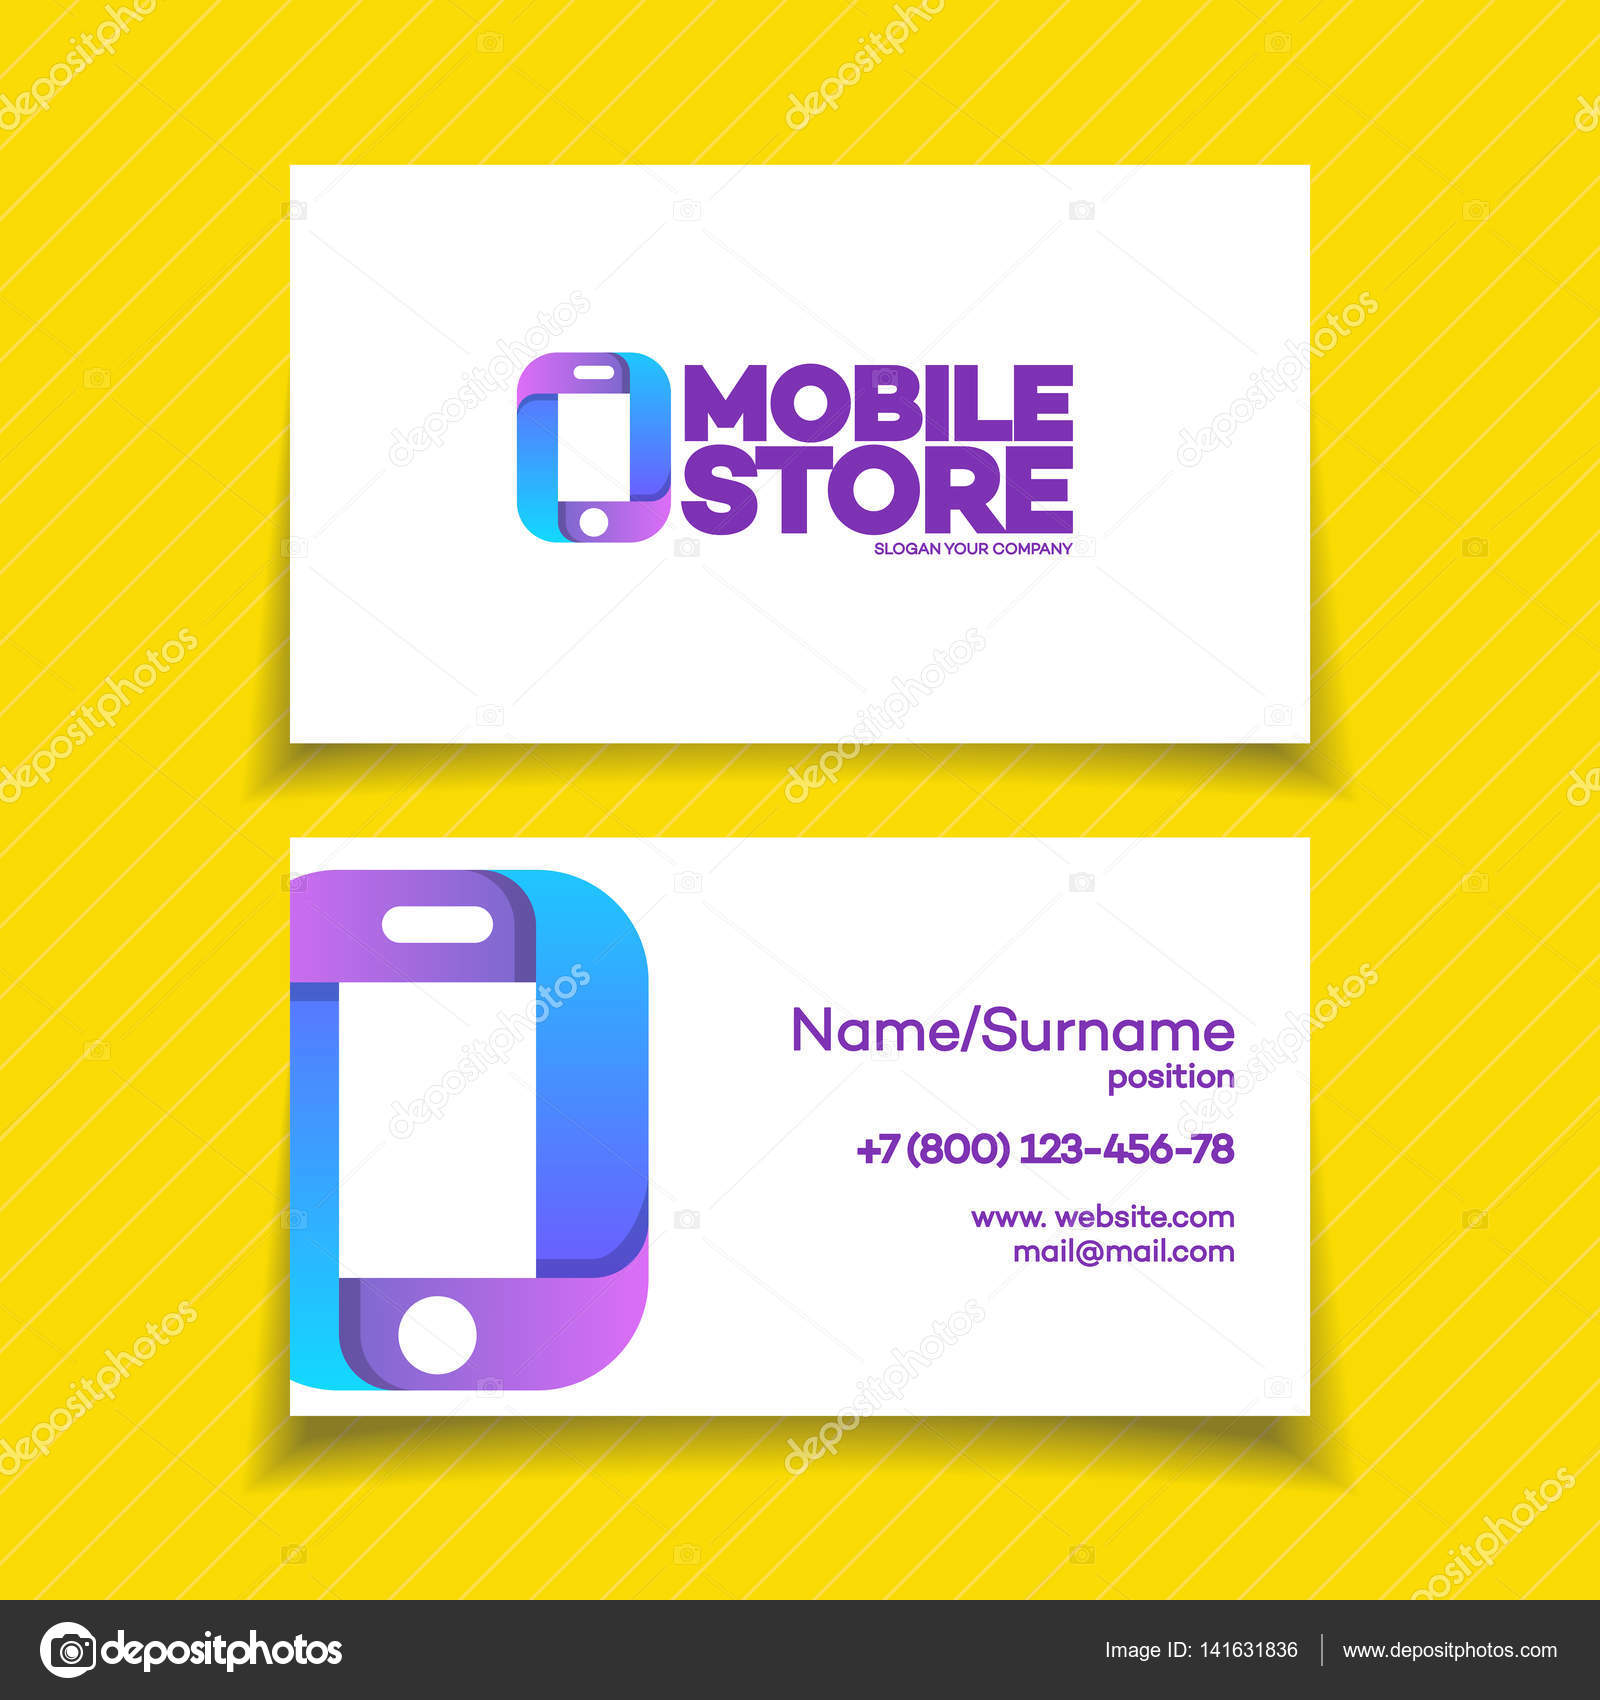 Mobile store business card stock vector vi6277 141631836 mobile store business card design template with phone logo on yellow background can used for mobile store phone service and repair magicingreecefo Gallery